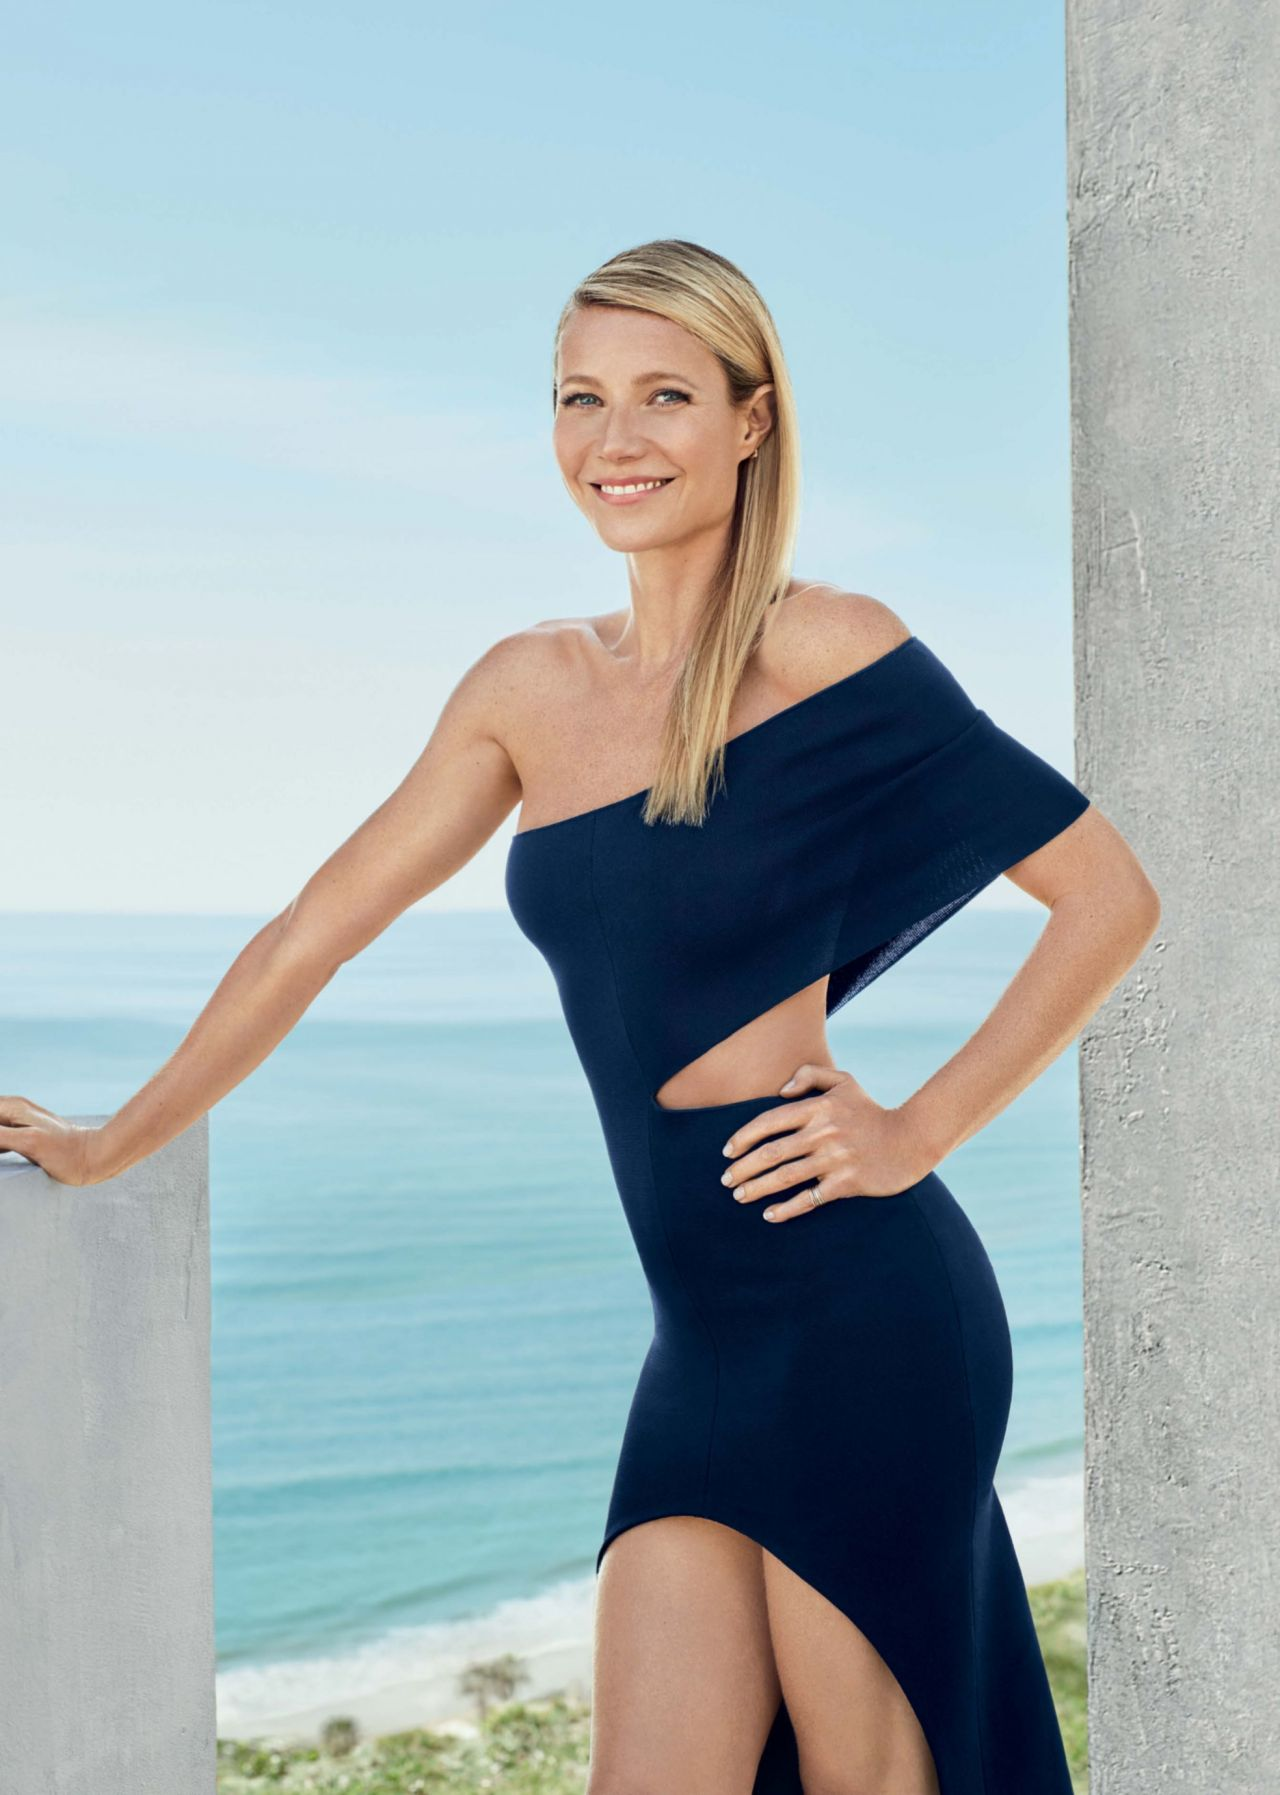 Gwyneth Paltrow Self Magazine May 2016 Issue